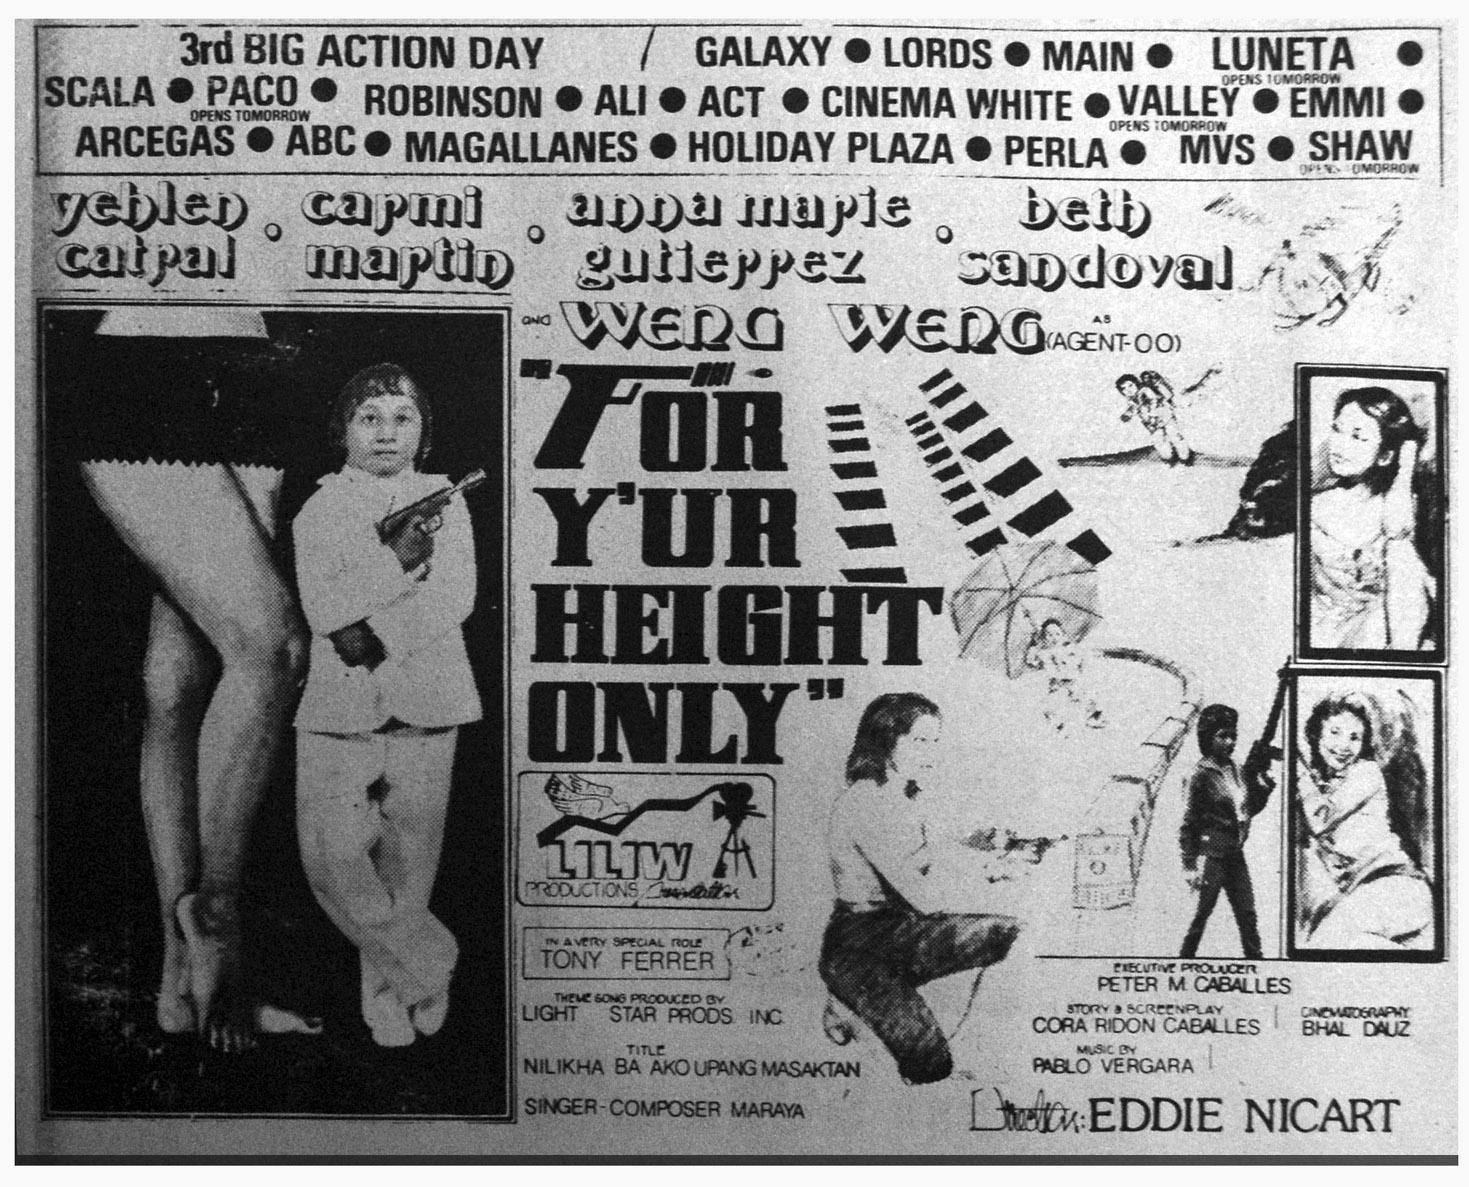 1981 - For Y?ur Height Only (Liliw Productions)